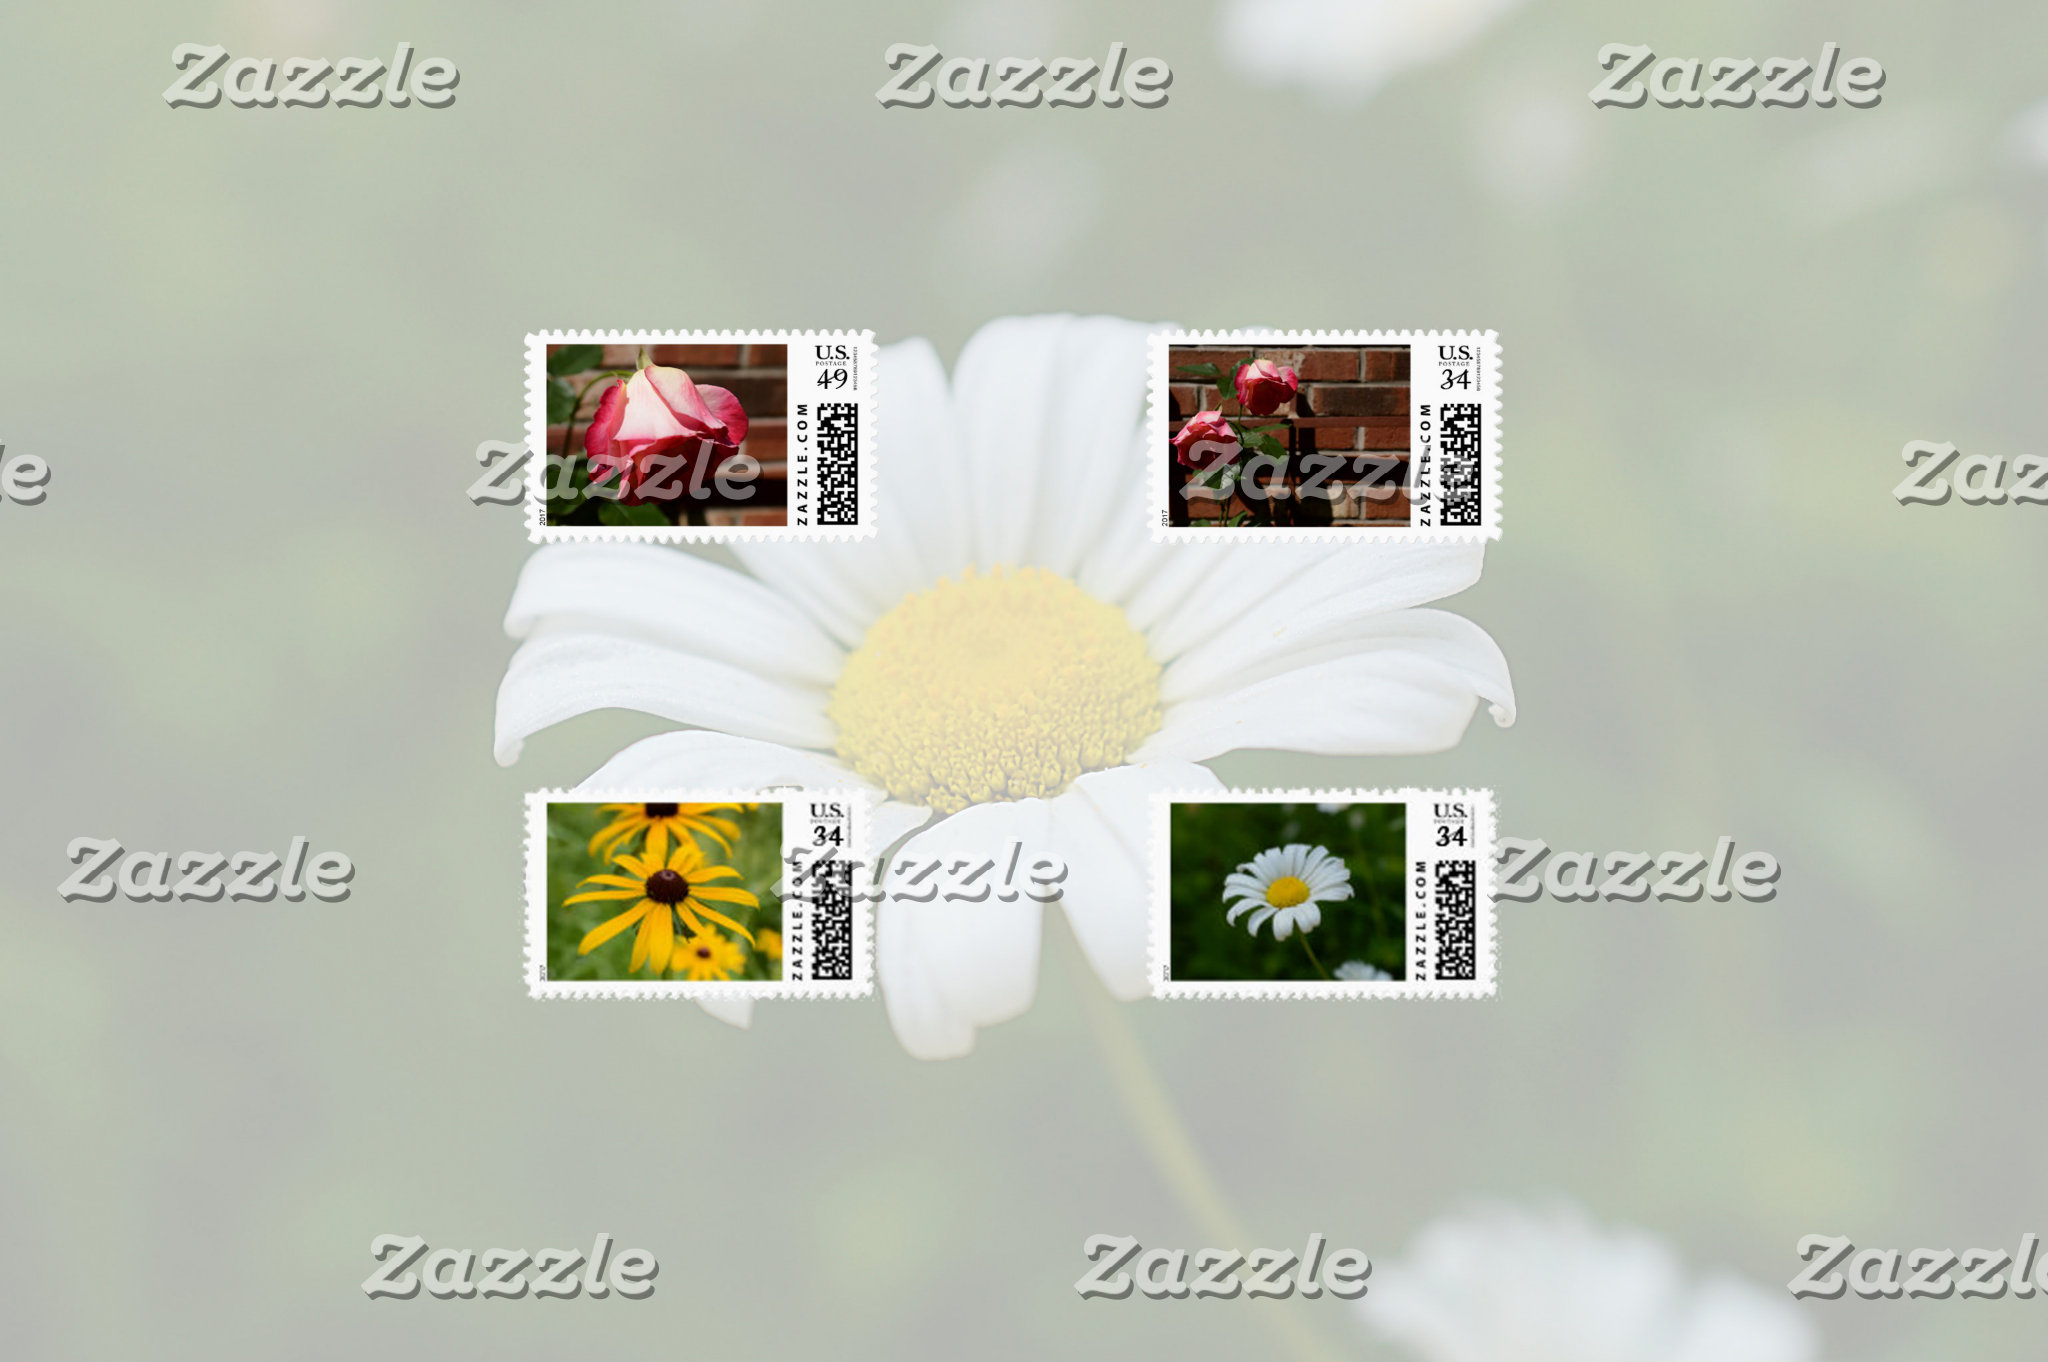 Postage sheets